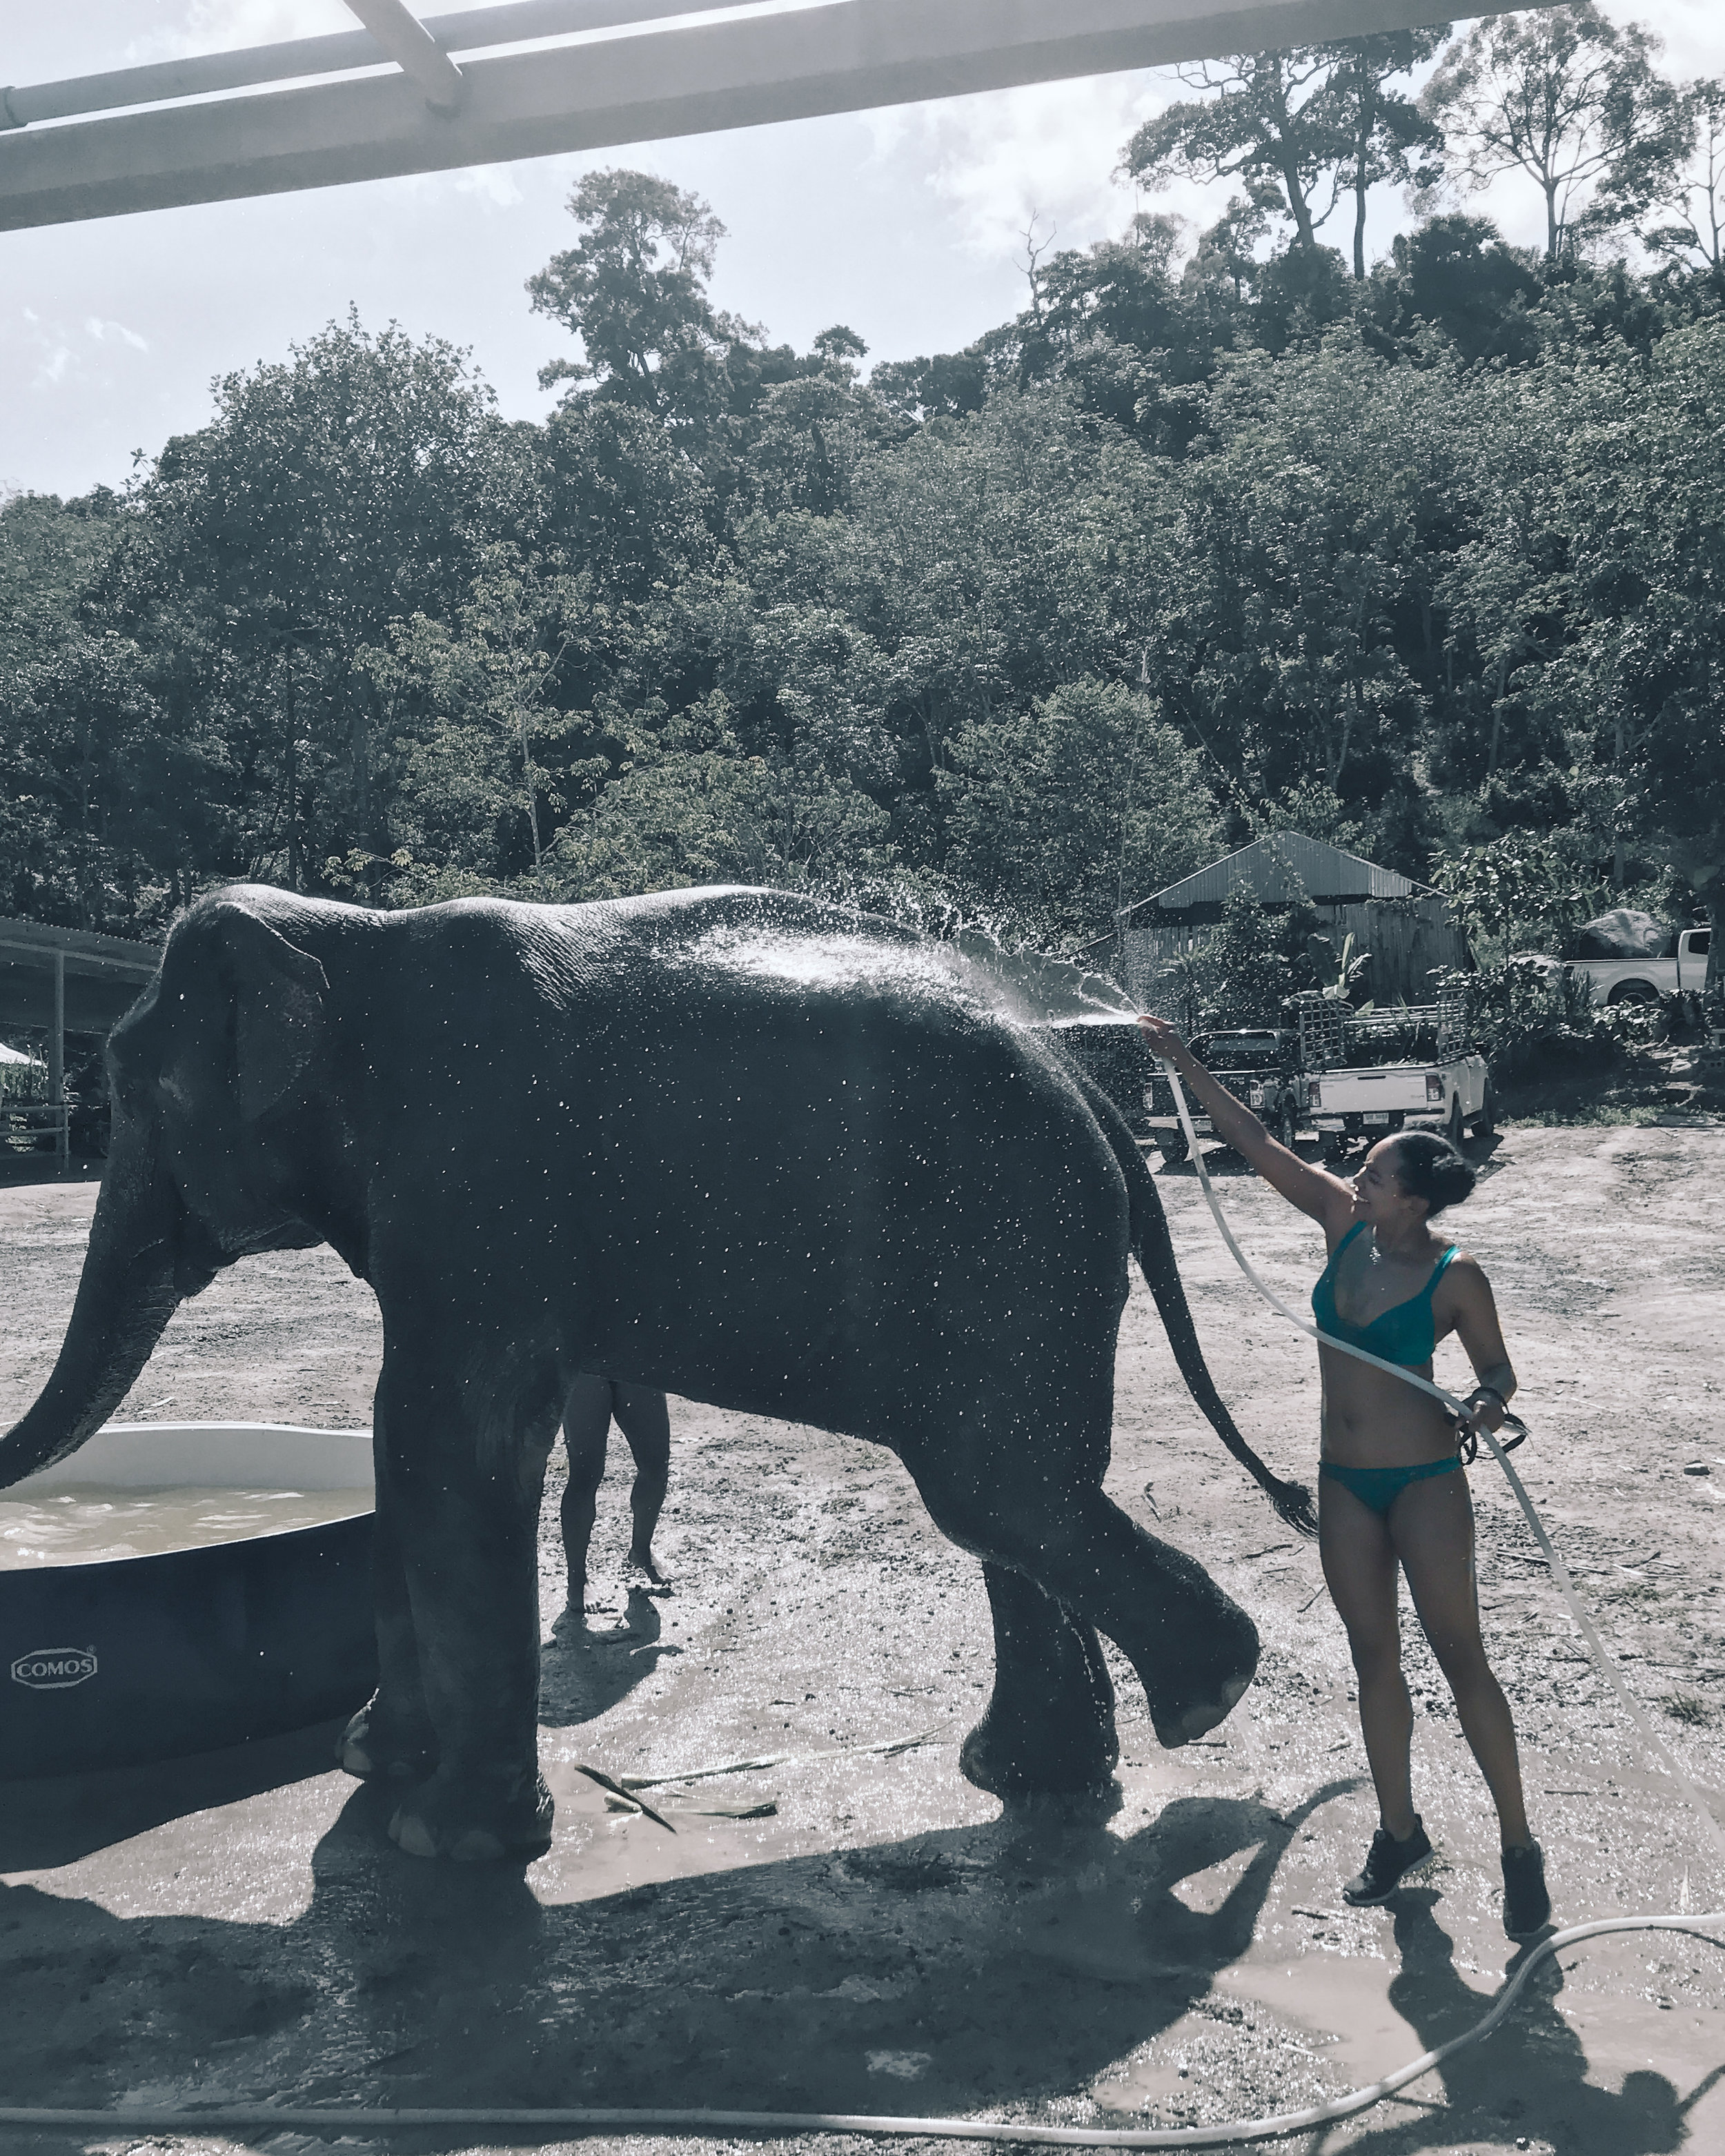 Bathing Elephants in Phuket